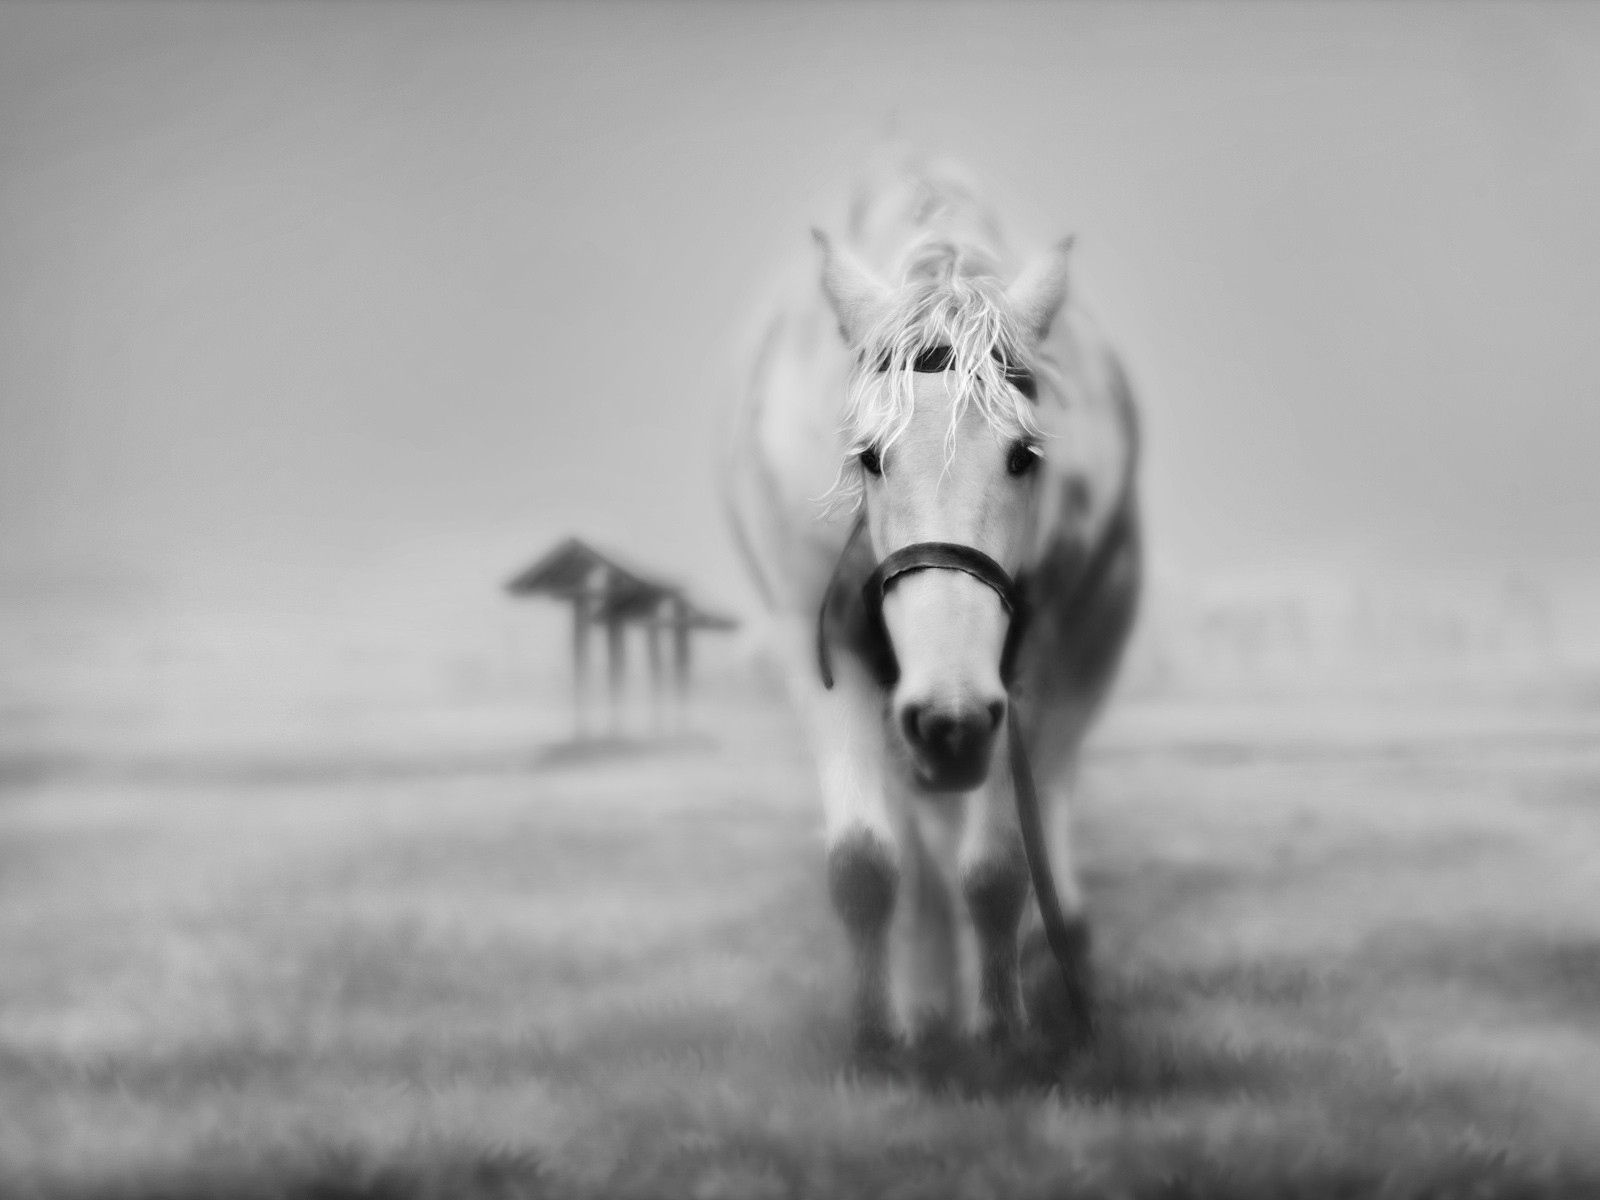 84751 download wallpaper Animals, Horses, Grass, Muzzle, Bw, Chb screensavers and pictures for free